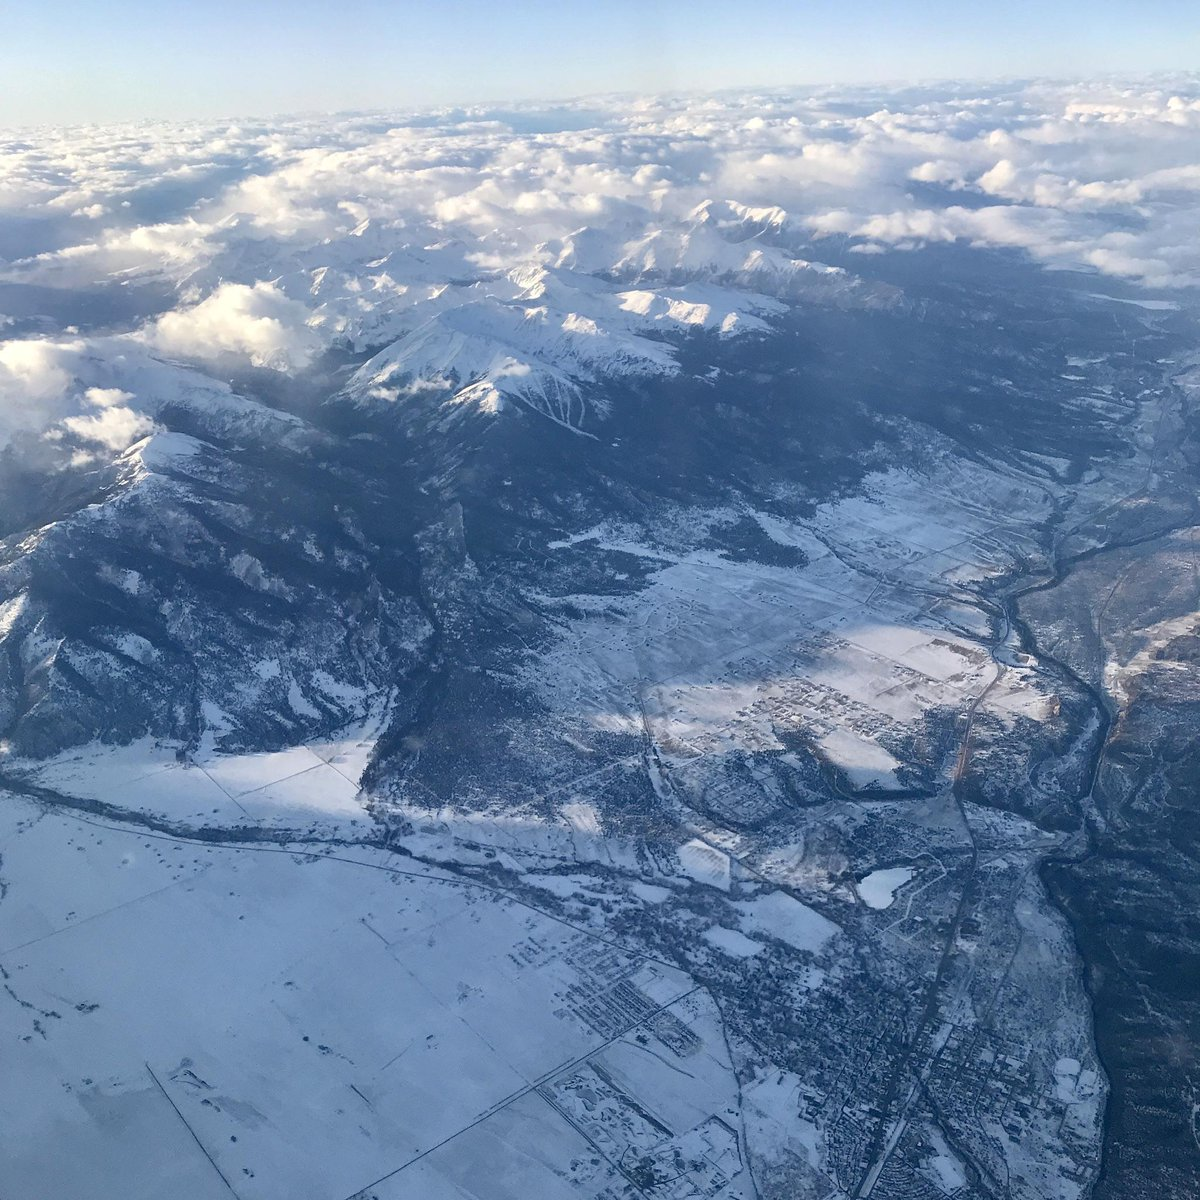 """""""Flying over the snow covered Rocky Mountains last winter near Buena Vista CO, a few minutes before landing at the Denver airport. From u/NewportVermont on Reddit #snowcoveredrockymountainslastwinternearbuenavistaco #denverairport #minutes #landing #flying #winter"""" https://t.co/46OjFqGmnH"""